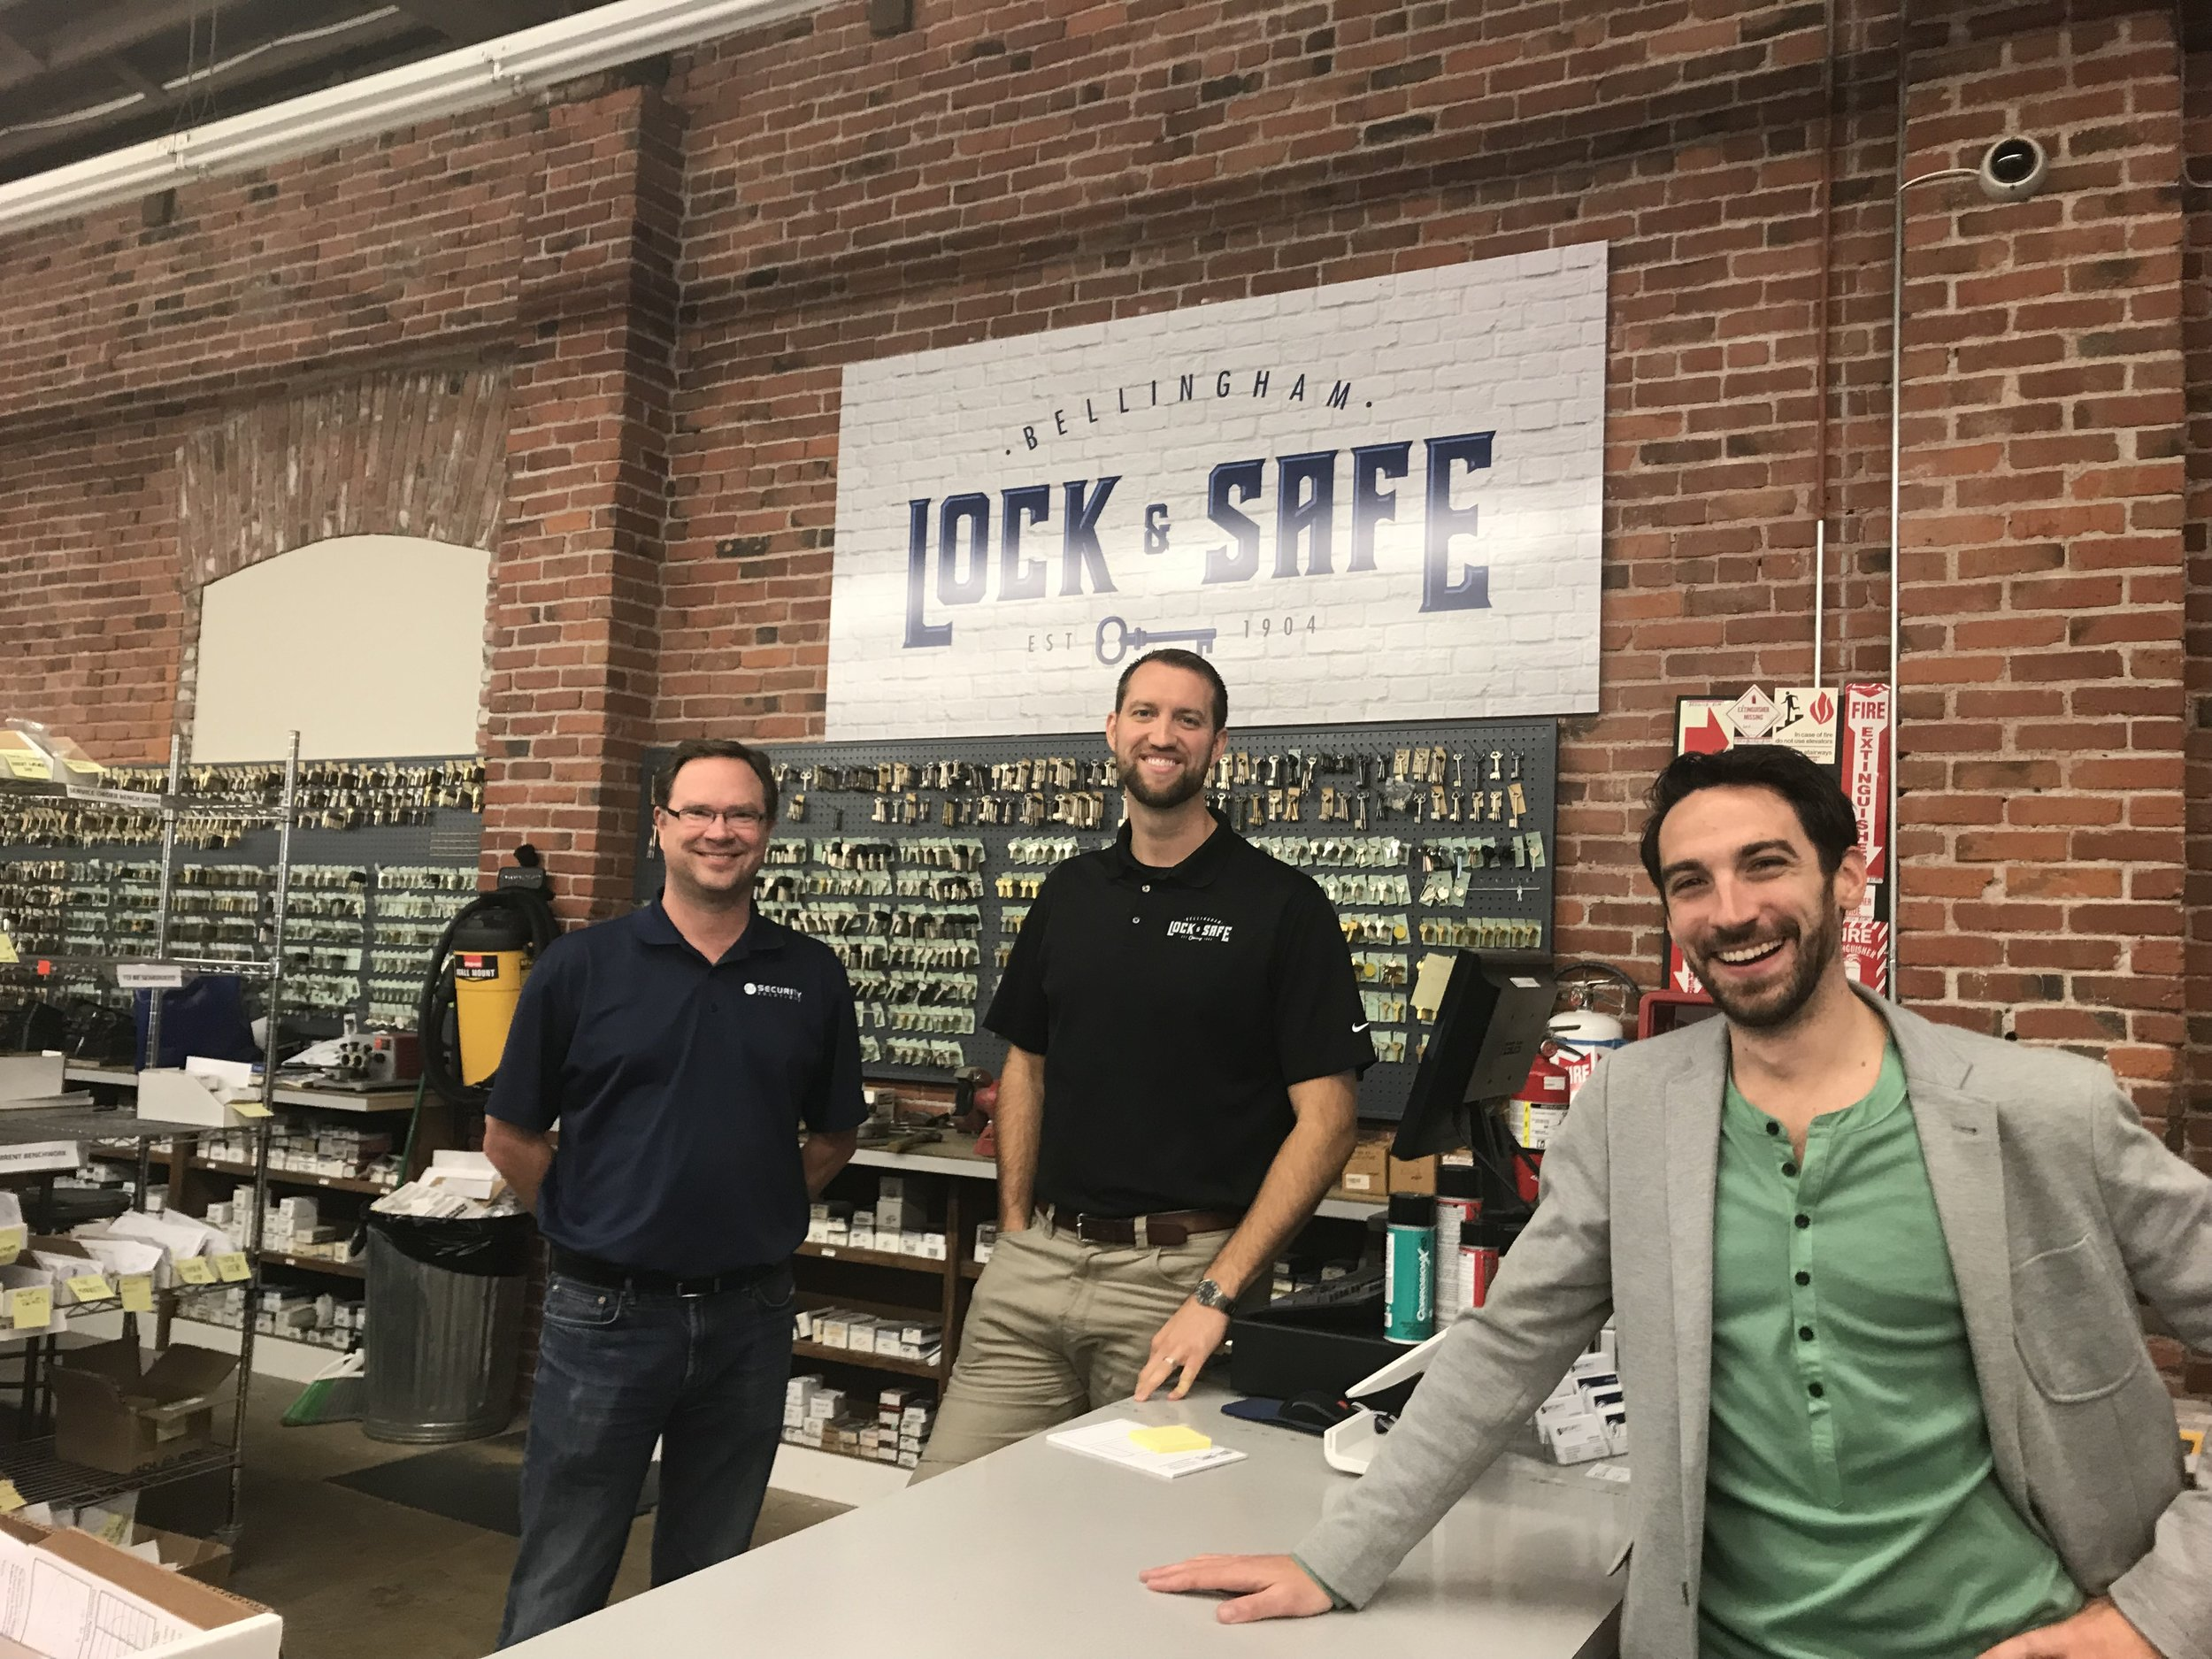 Jamie Vos, left, owner of Security Solutions, Daniel Ford, middle, locksmith manager, and Ray Deck III, right, executive director of Skookum Kids, pose for a picture inside Bellingham Lock & Safe in Bellingham, on Thursday, Oct. 27, 2017.